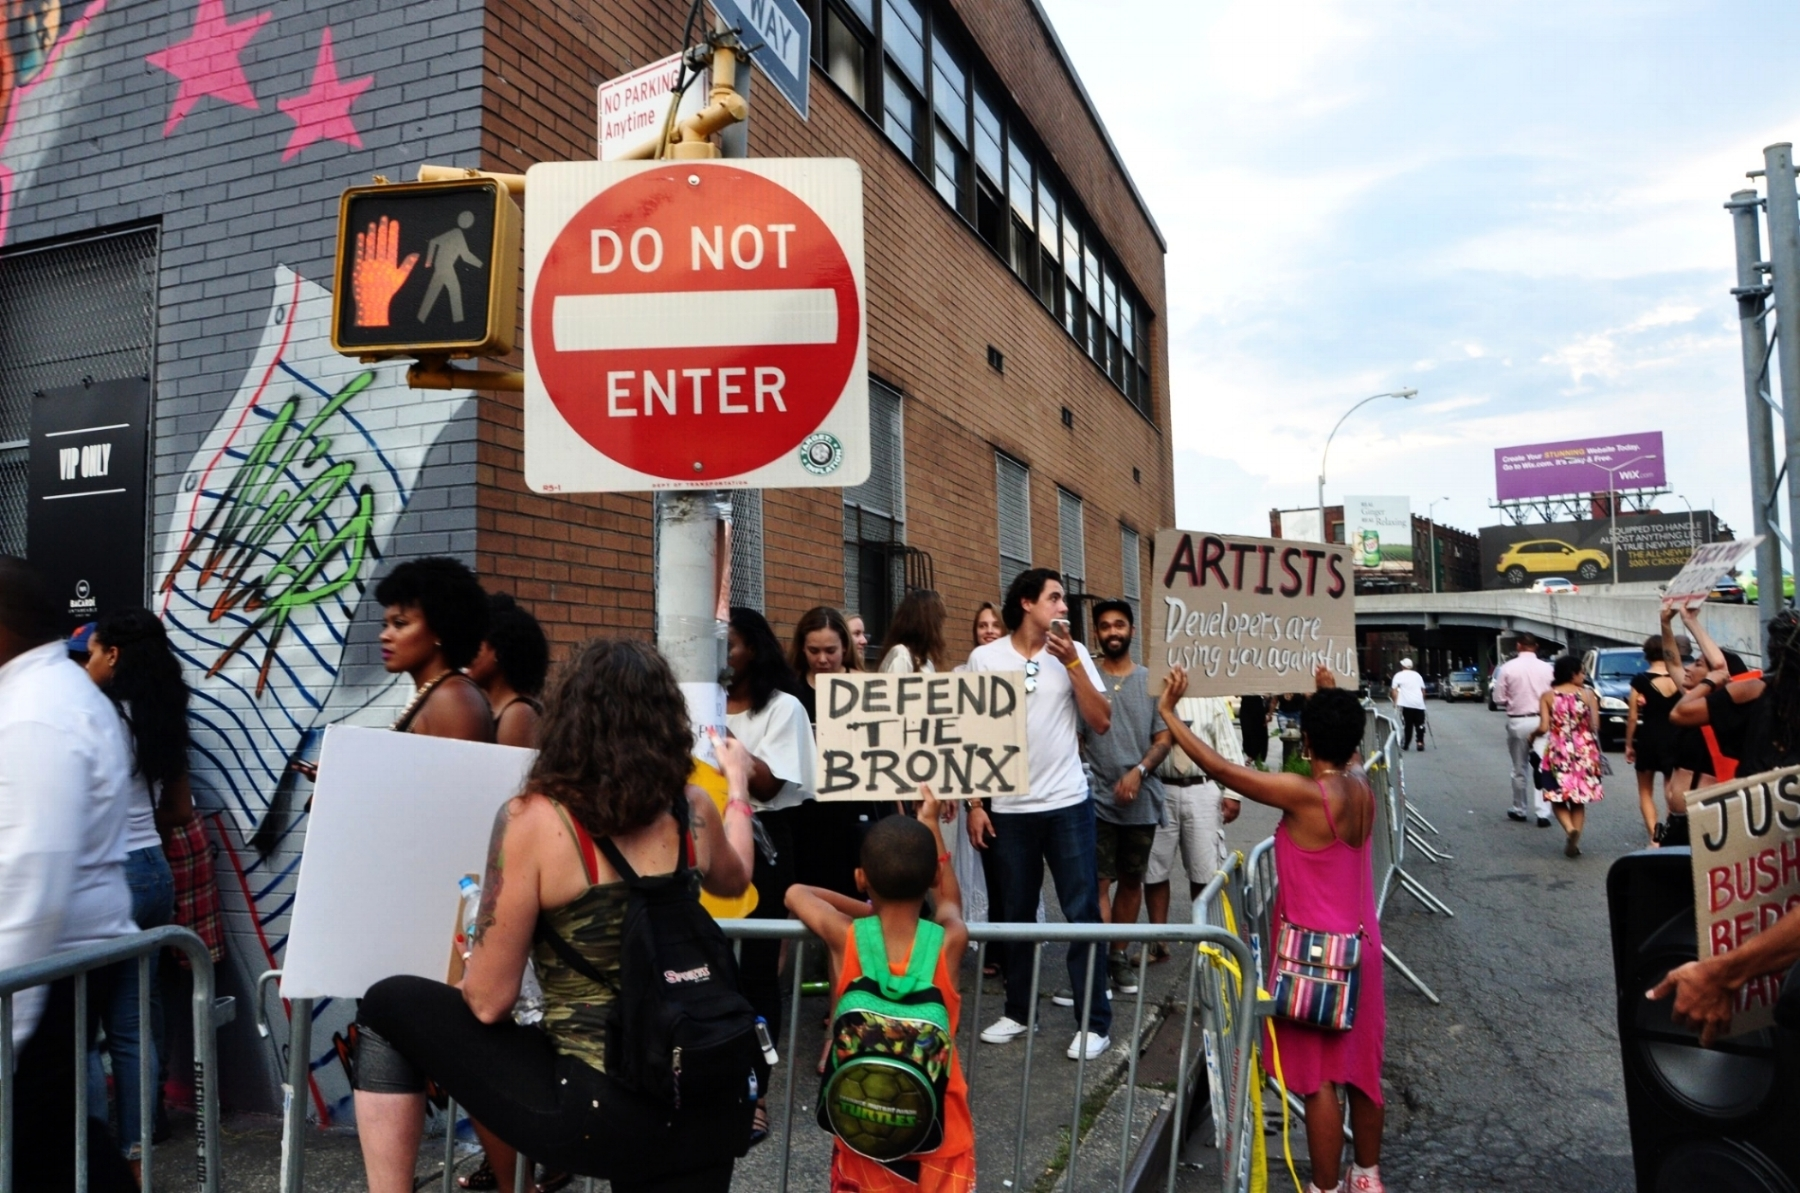 By Samali Bikangaga. Protesters rally outside 101 Lincoln Ave. to denounce the show